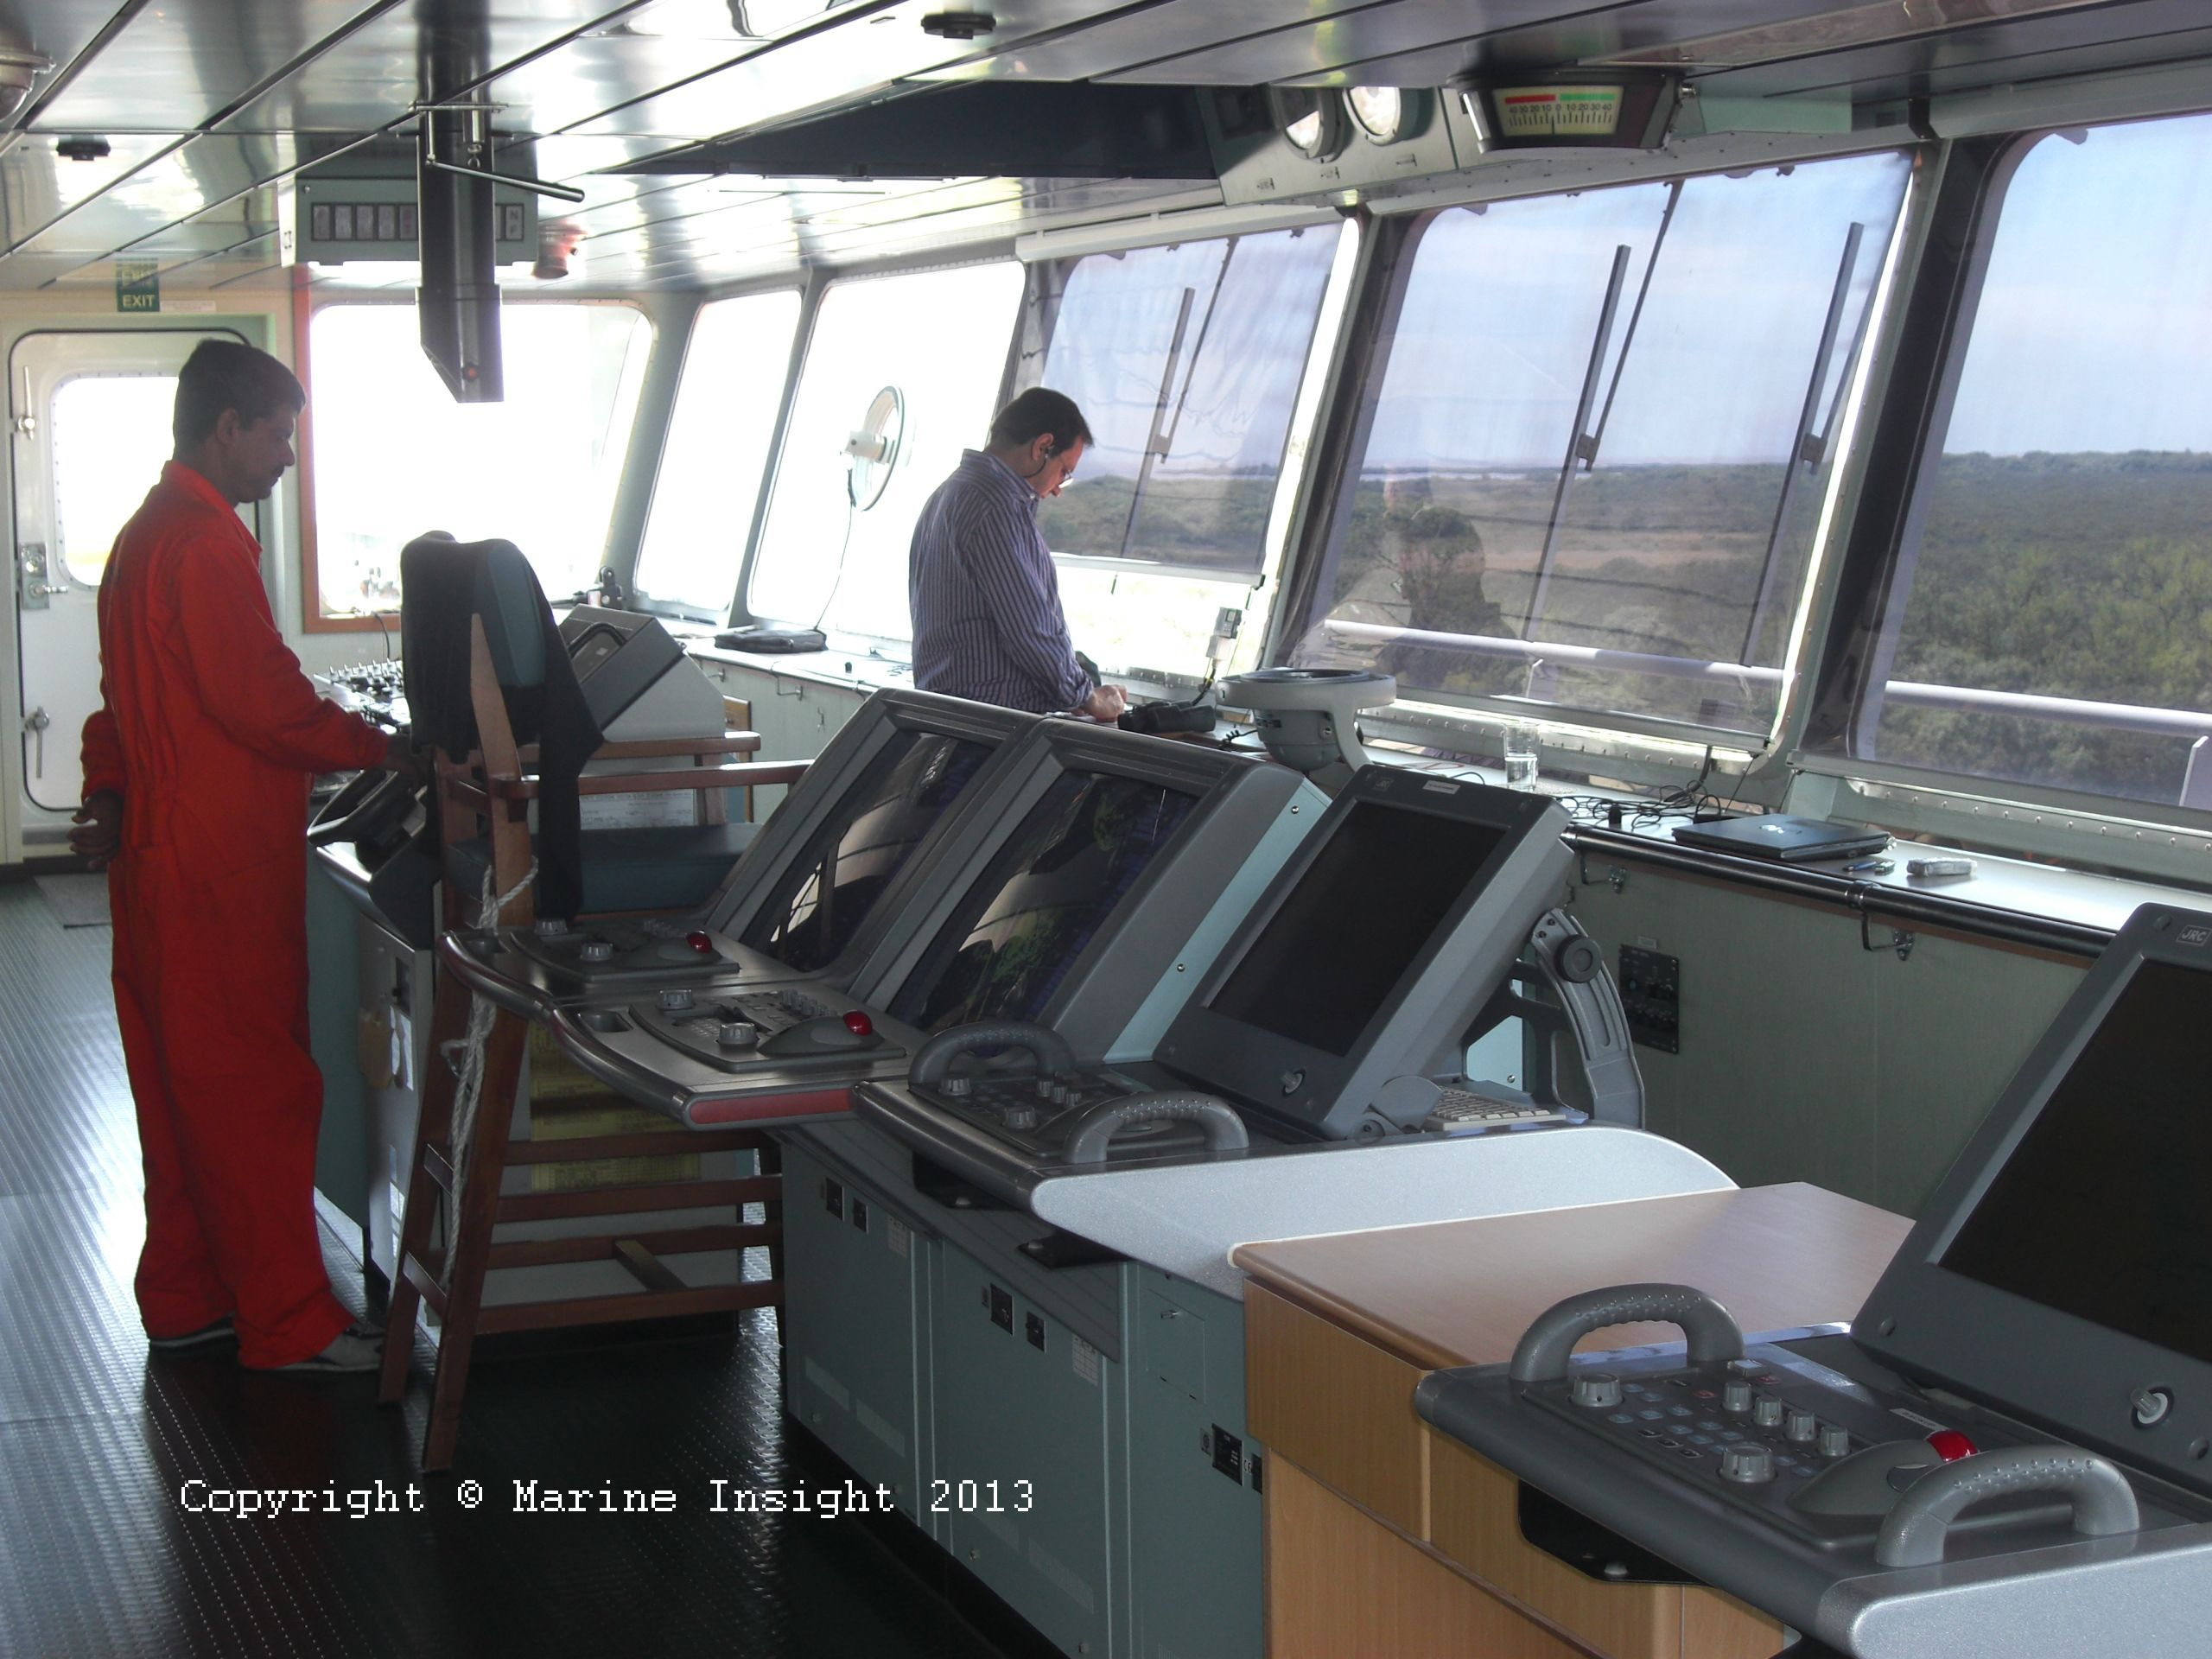 10 Things Deck Officer Must Know While Operating Main